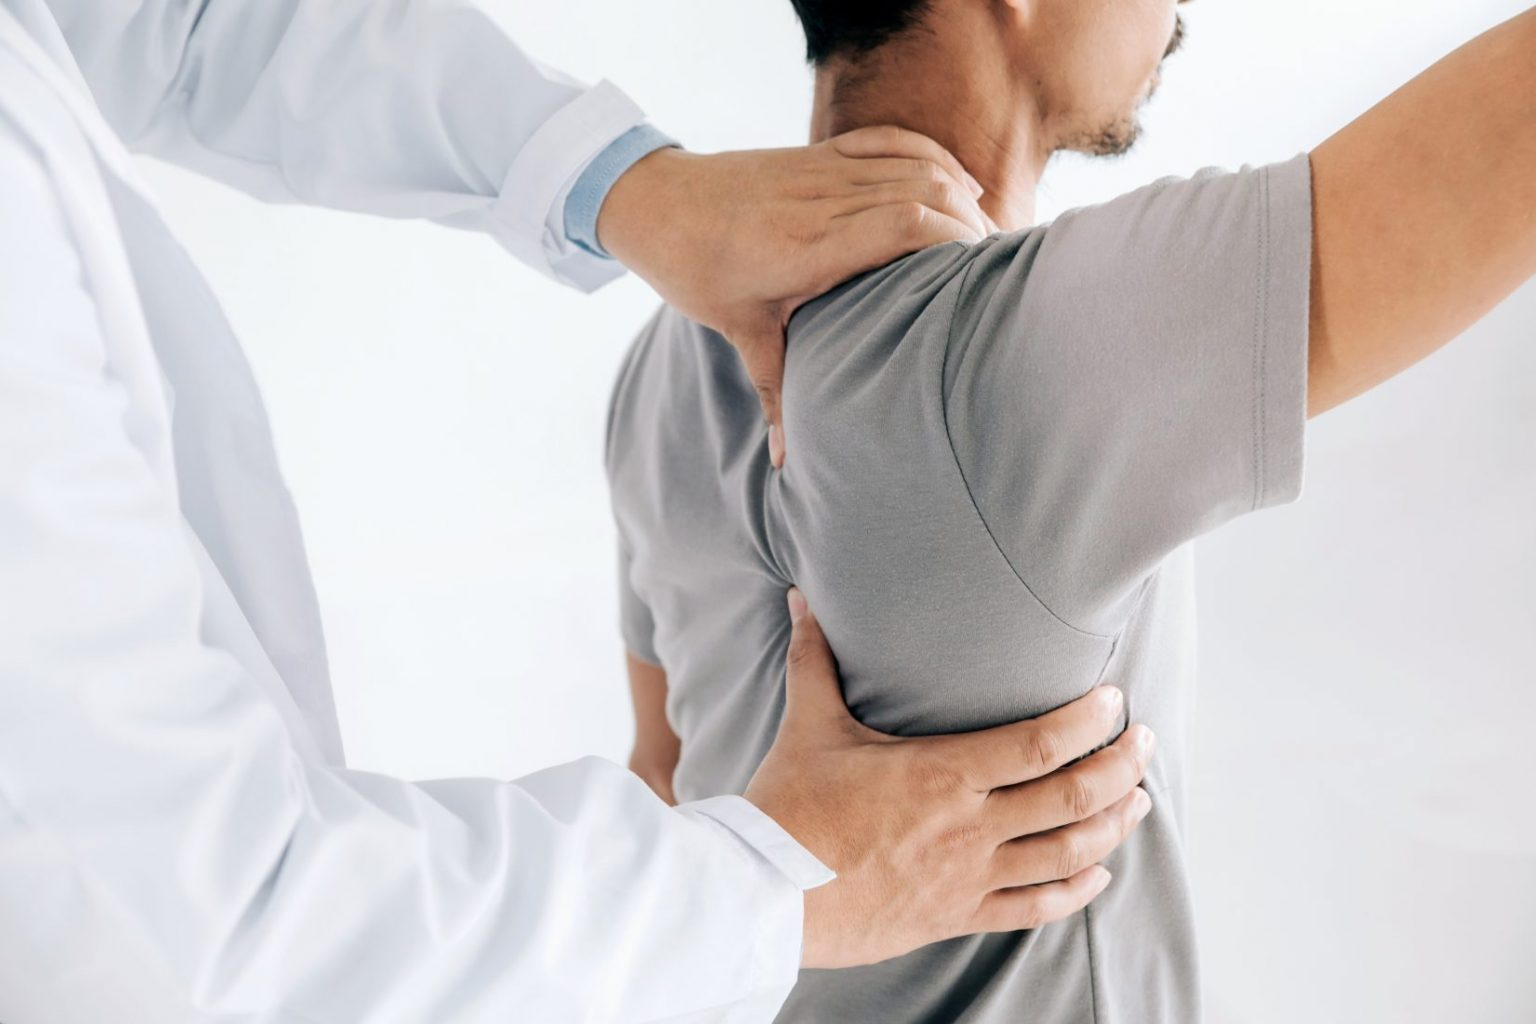 Physical Therapist in Stratford New Jersey